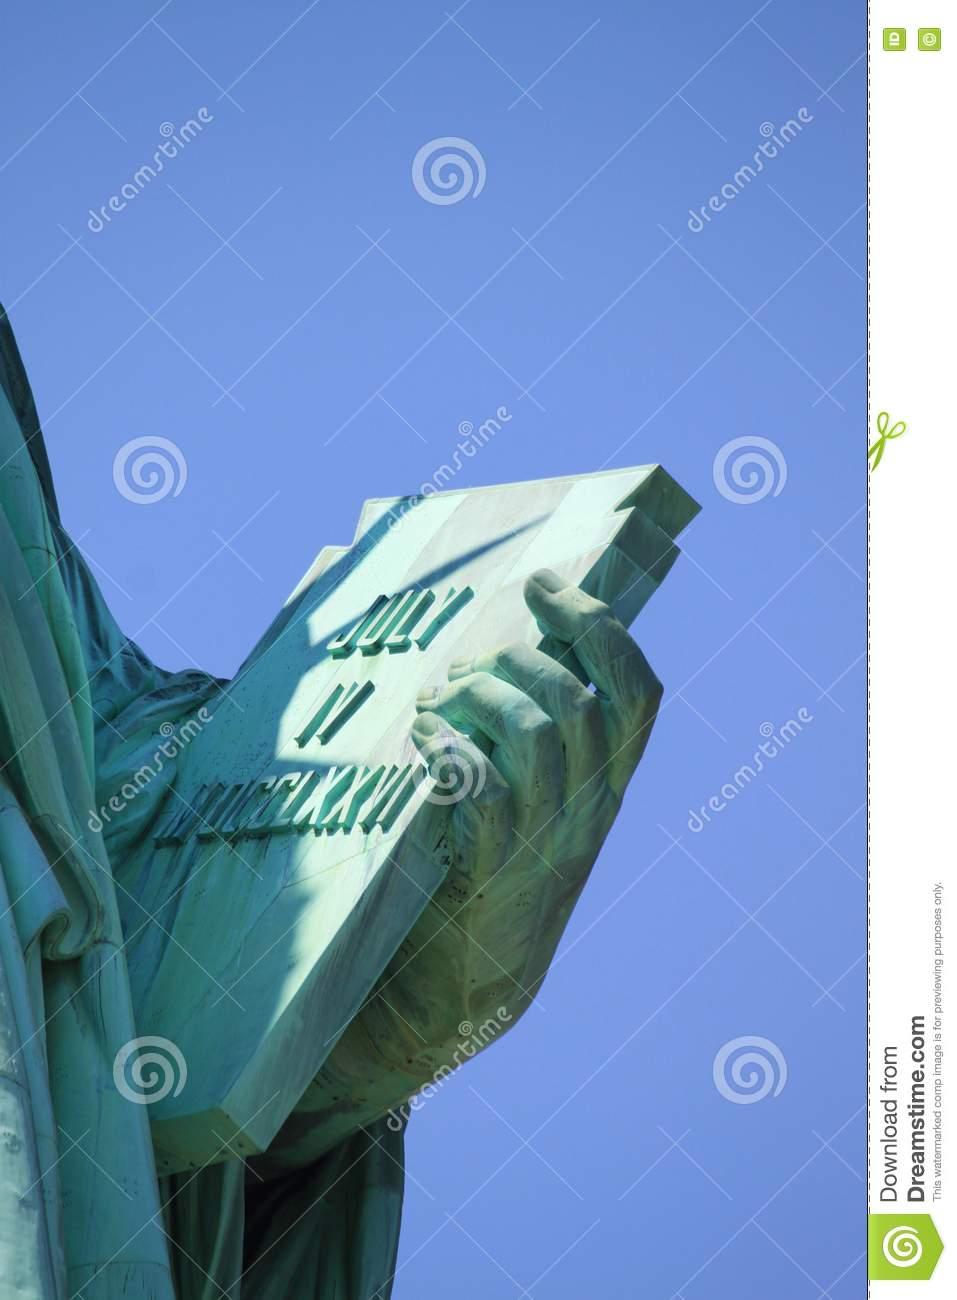 Statue Of Liberty Book Stock Photo - Image: 73743174